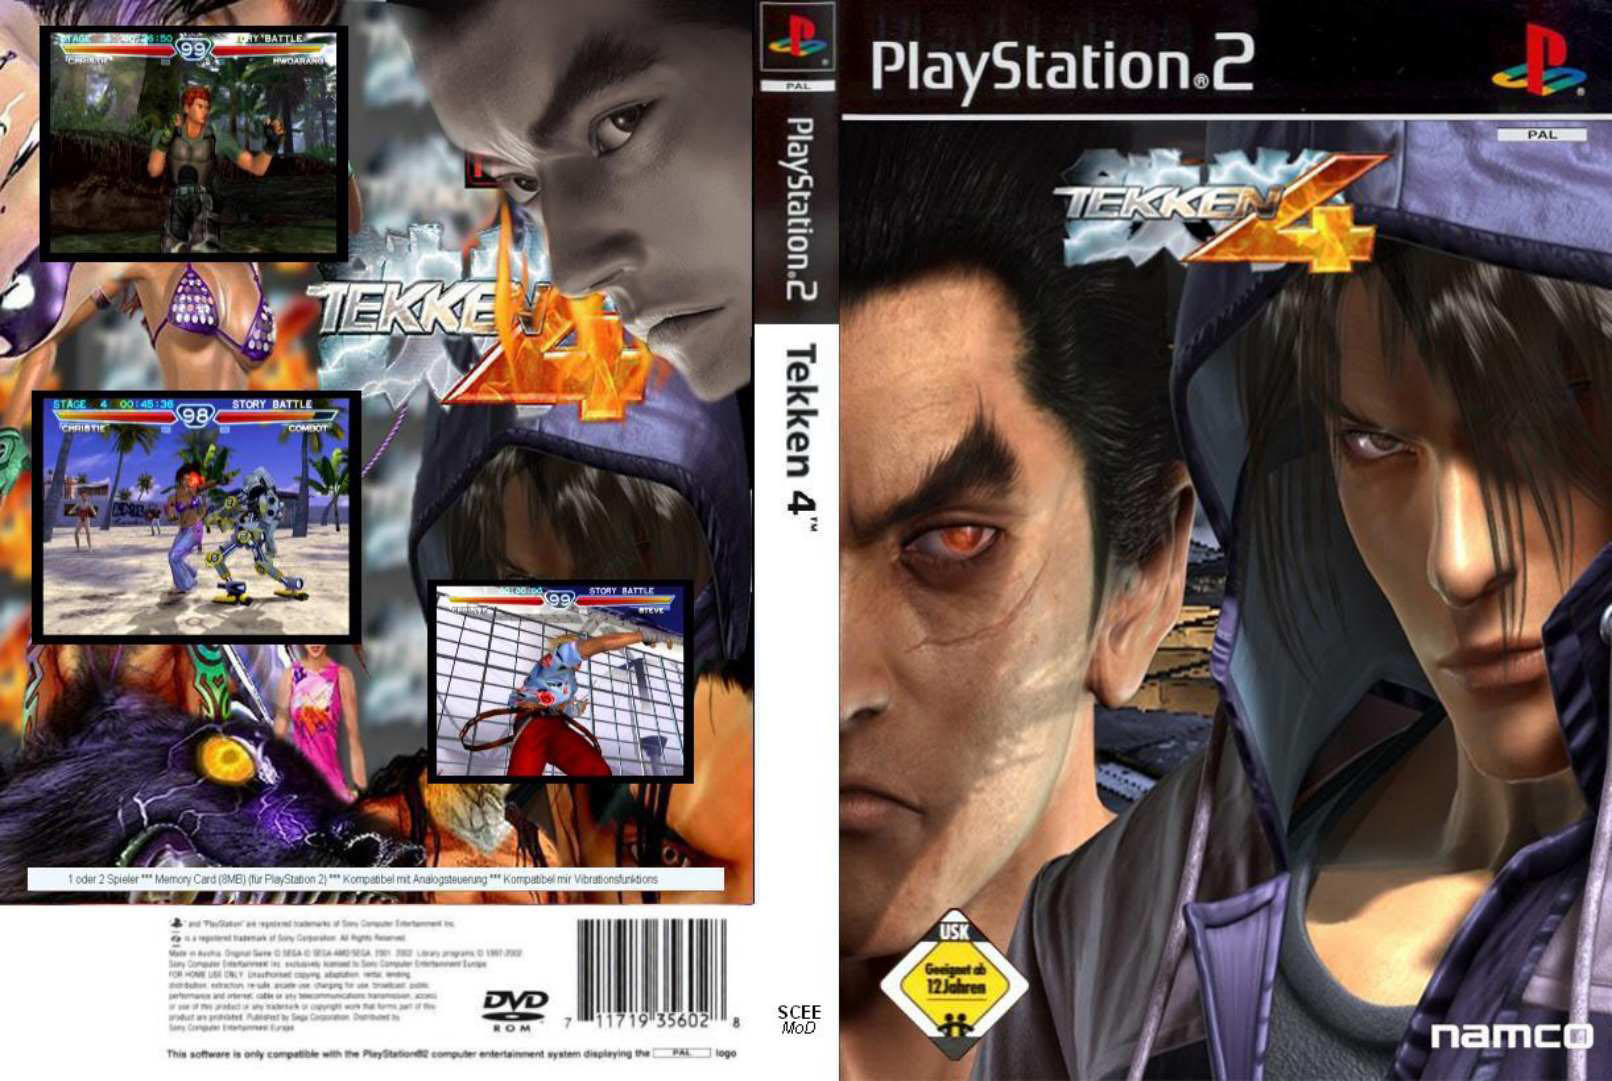 Tekken 4 Pal Ps2 Full Playstation 2 Covers Cover Century